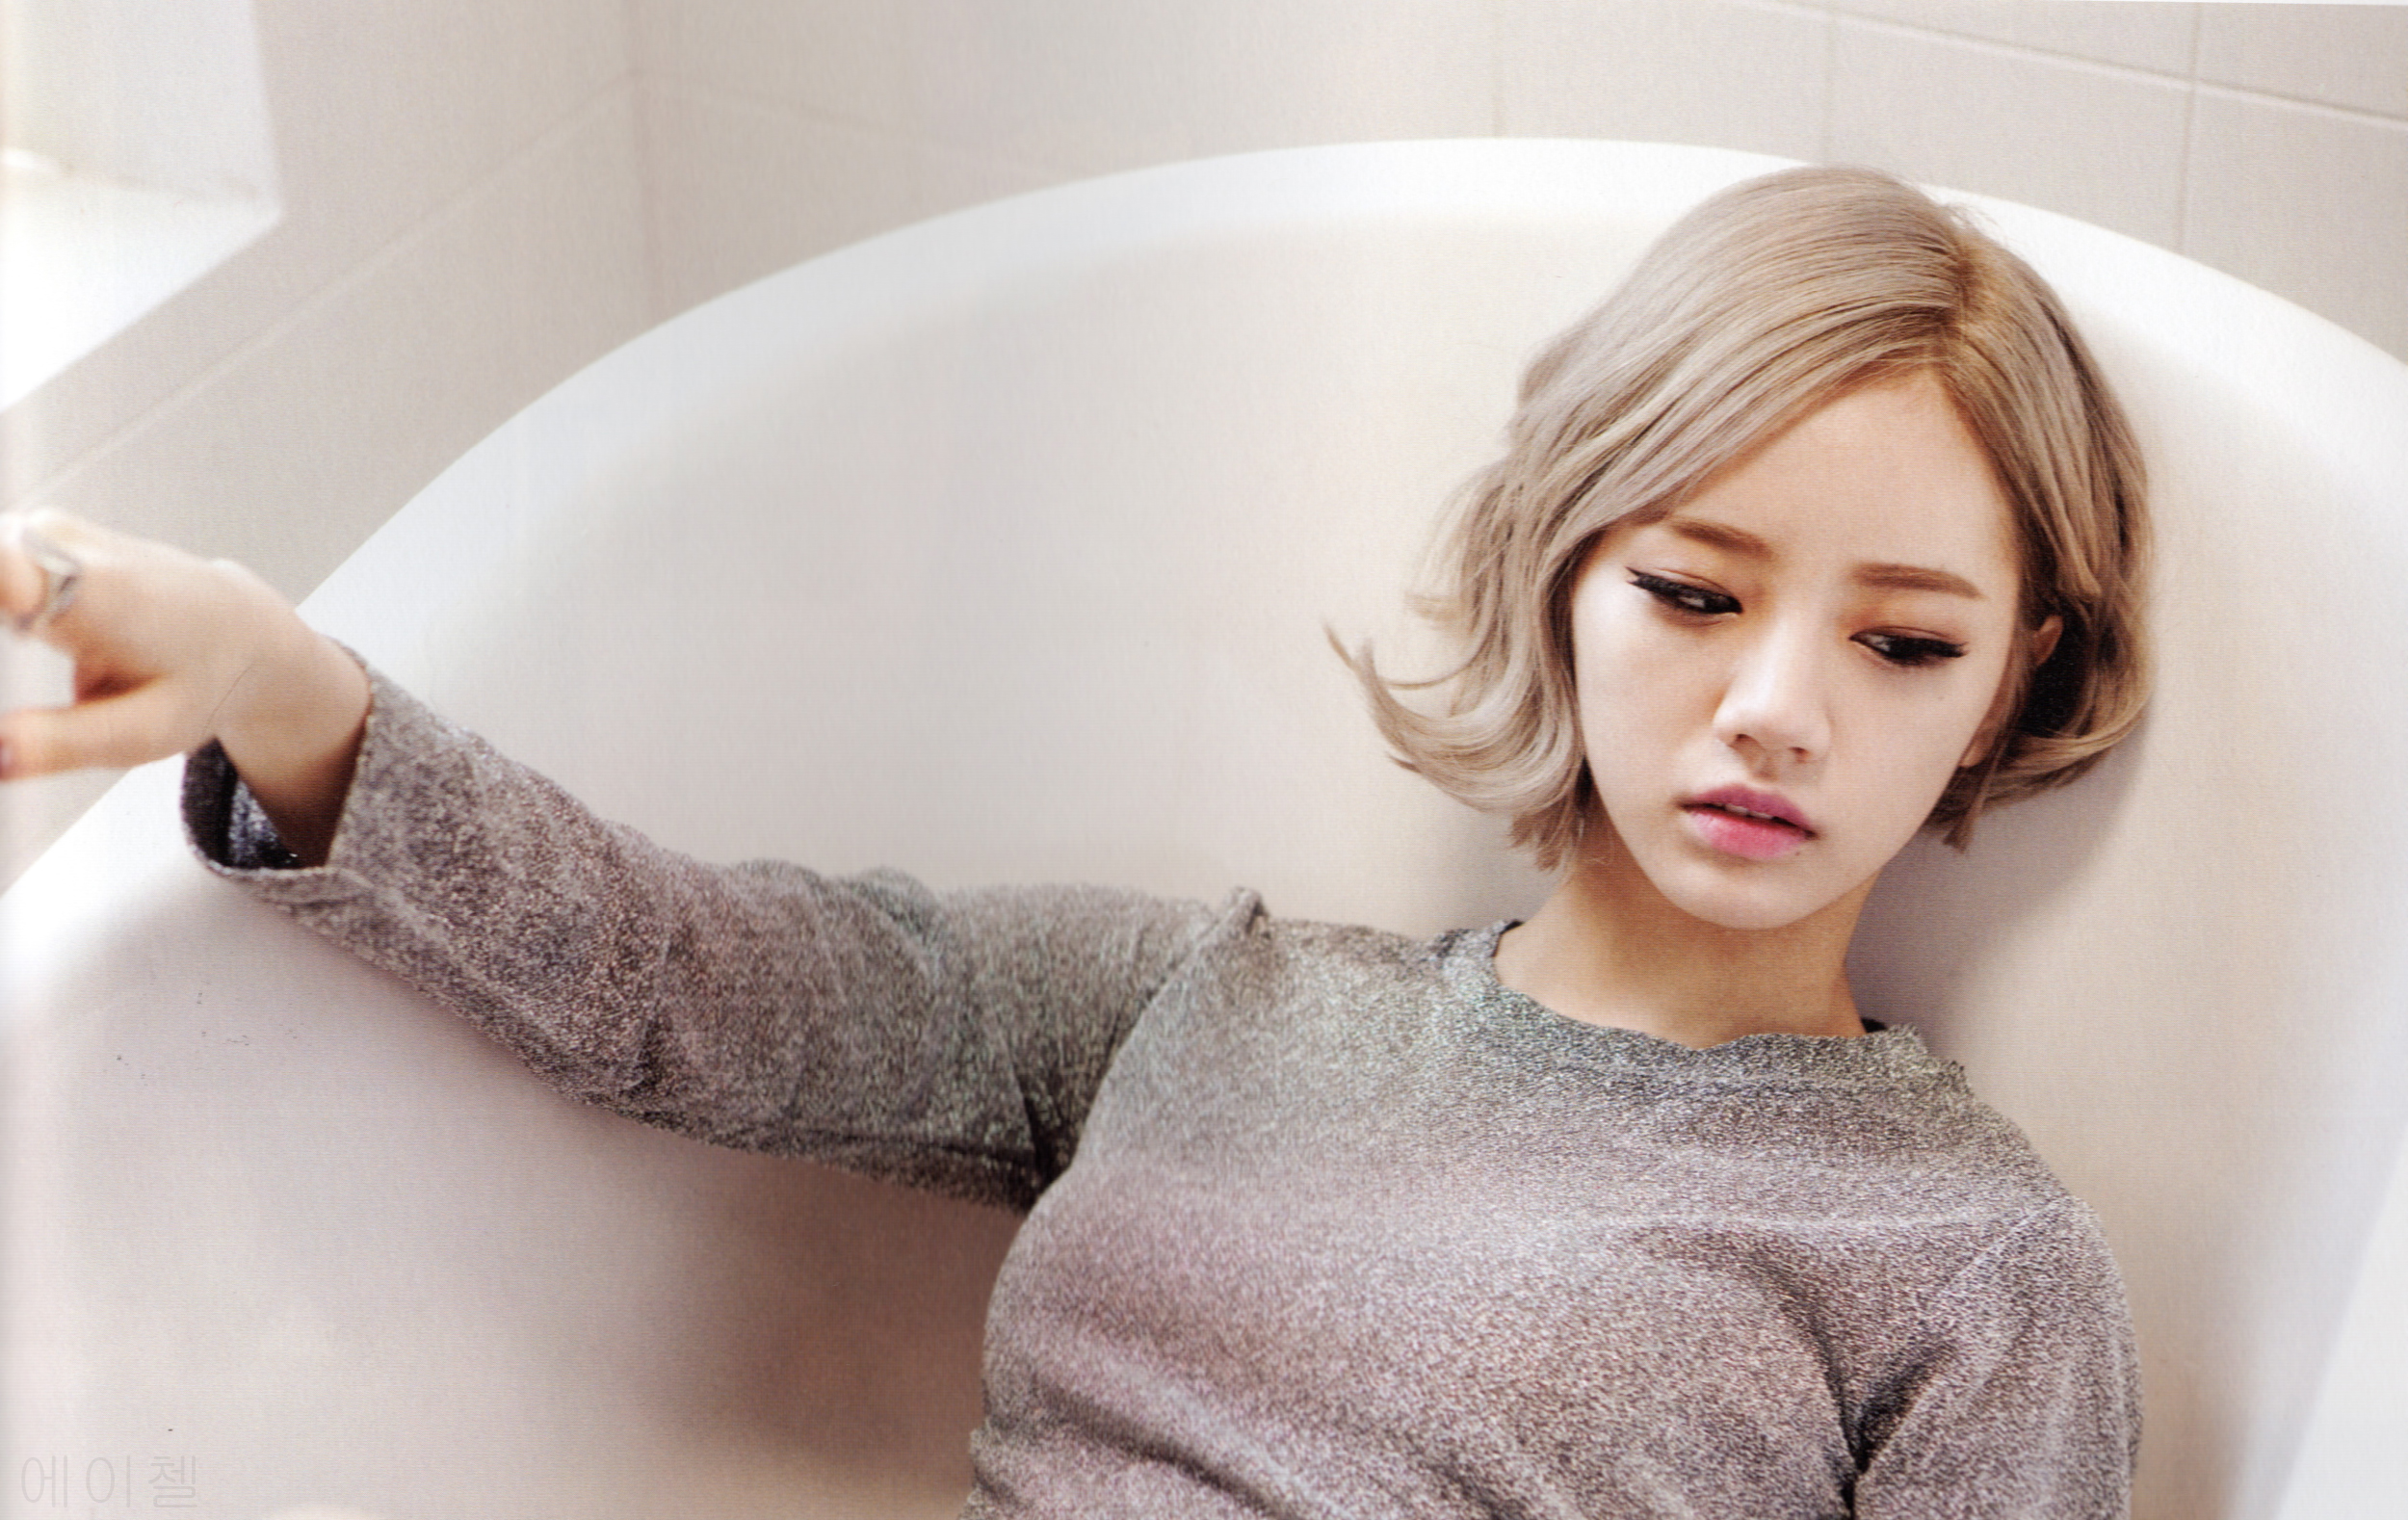 http://images6.fanpop.com/image/photos/38000000/Lee-Hyeri-lee-hyeri-38090923-2500-1578.jpg